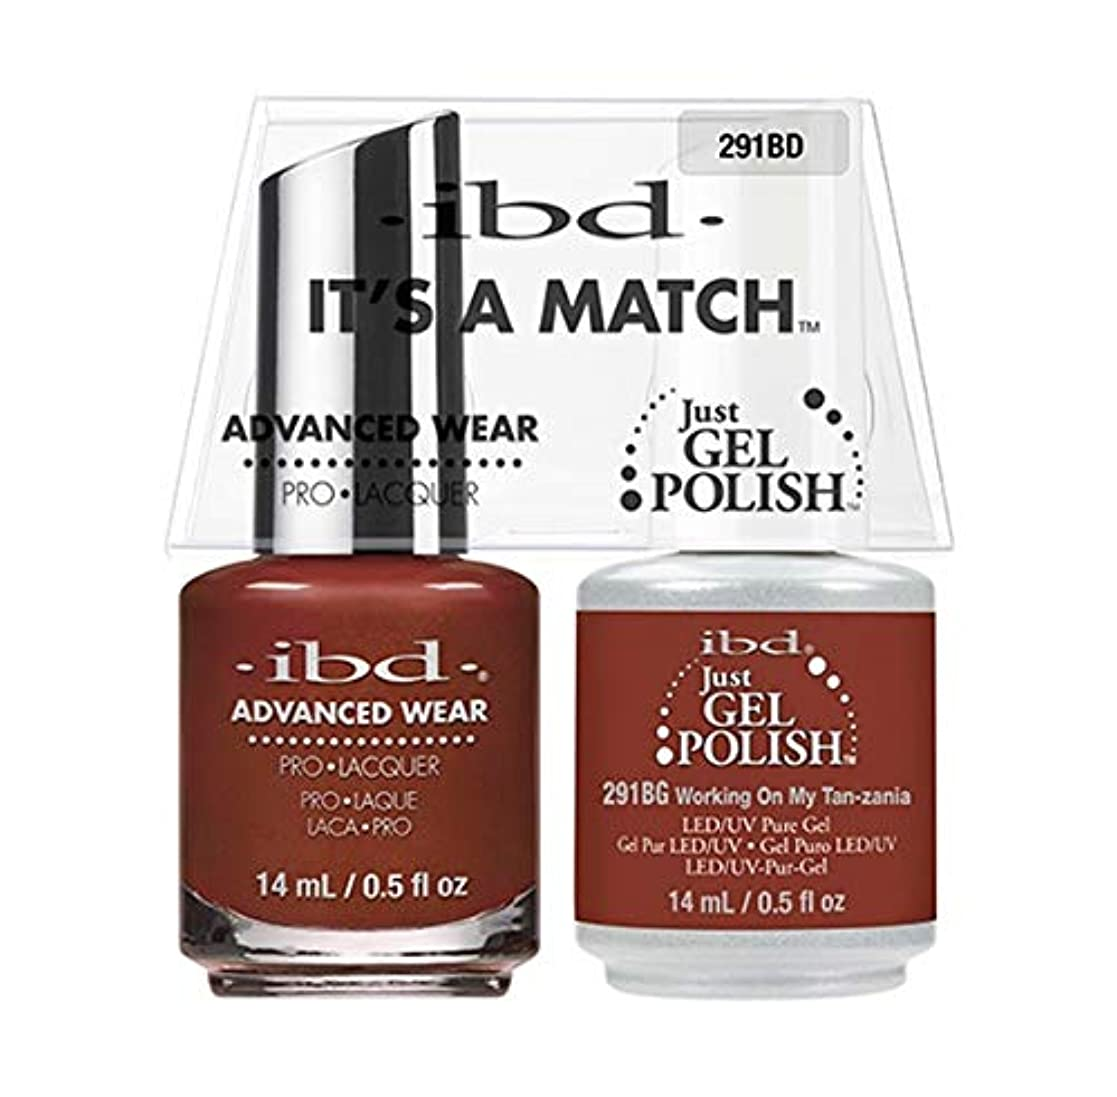 ibd - It's A Match - Duo Pack - Serengeti Soul Collection - Workin On My Tan-zania - 14ml / 0.5oz each